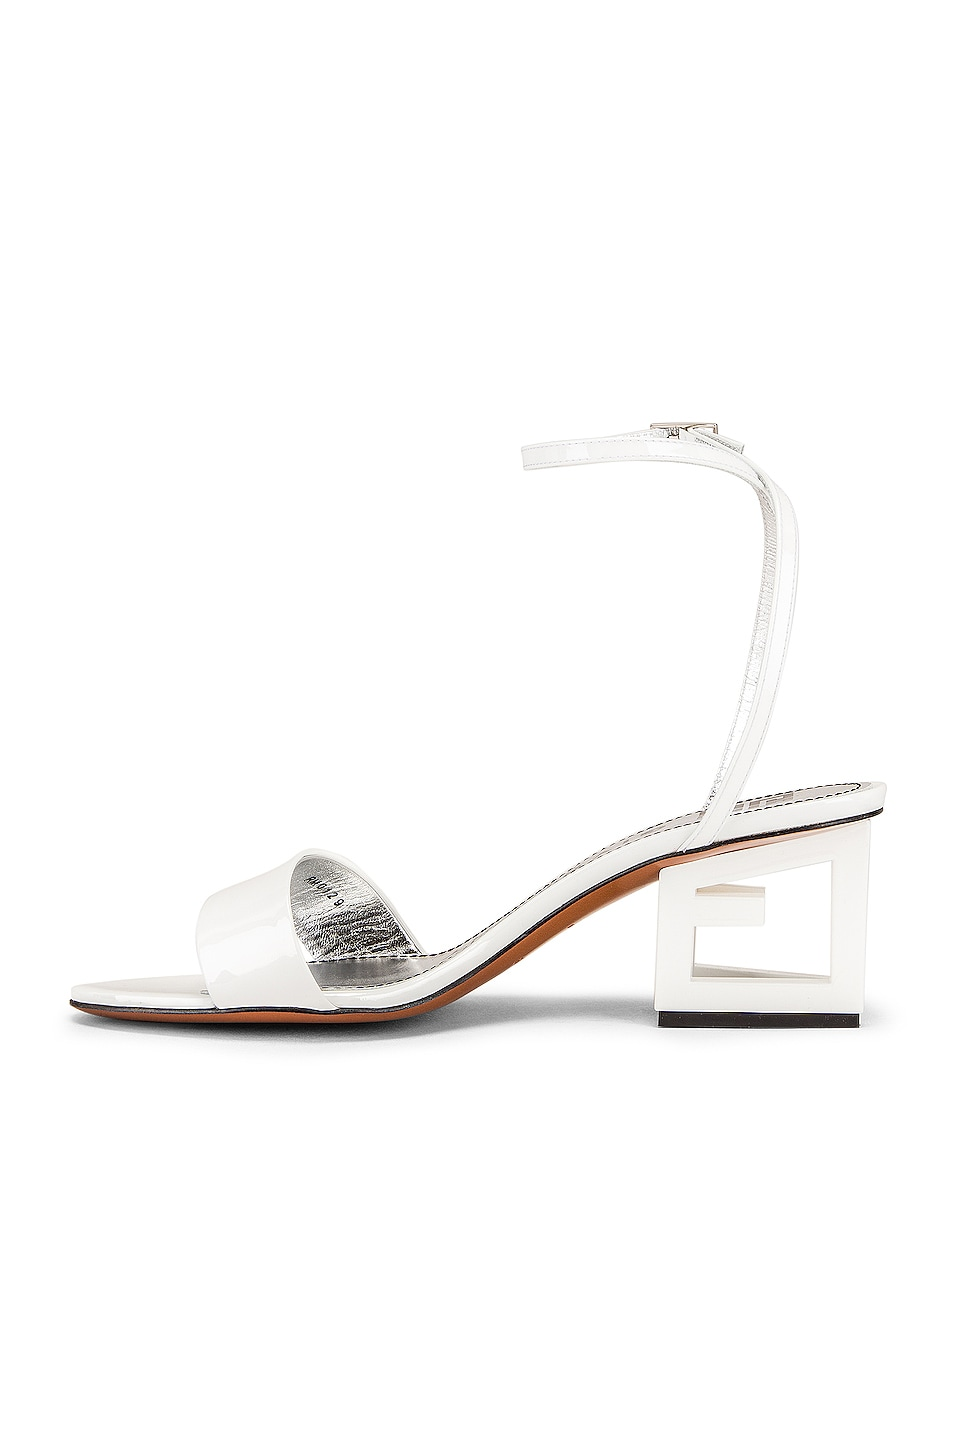 Image 5 of Givenchy Patent Leather Triangle Heel Strap Sandals in Off White